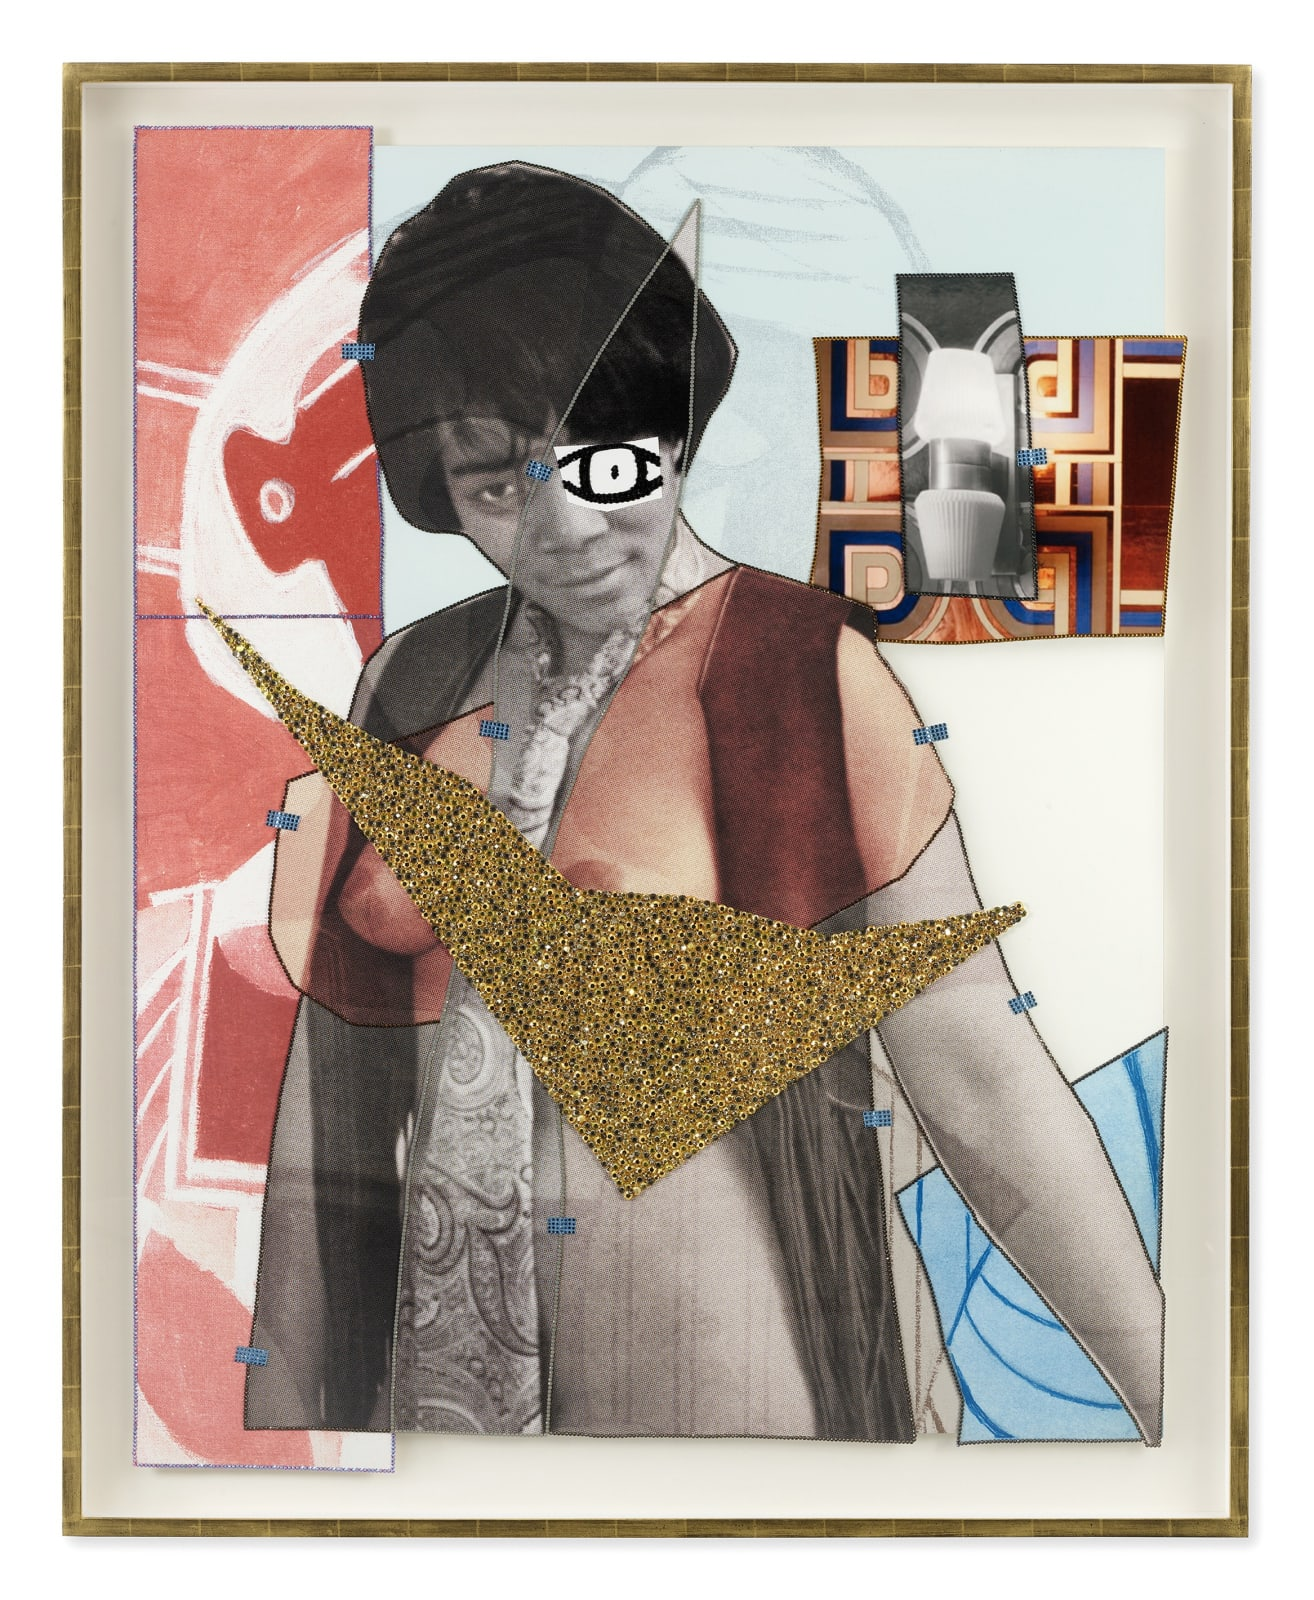 Mickalene Thomas Jet Blue #39, 2021 Color photograph, mixed media paper, acrylic paint, rhinestones, glitter and oil pastel on museum paper mounted on dibond 68 1/8 x 54 7/8 inches - 173 x 139,4 cm